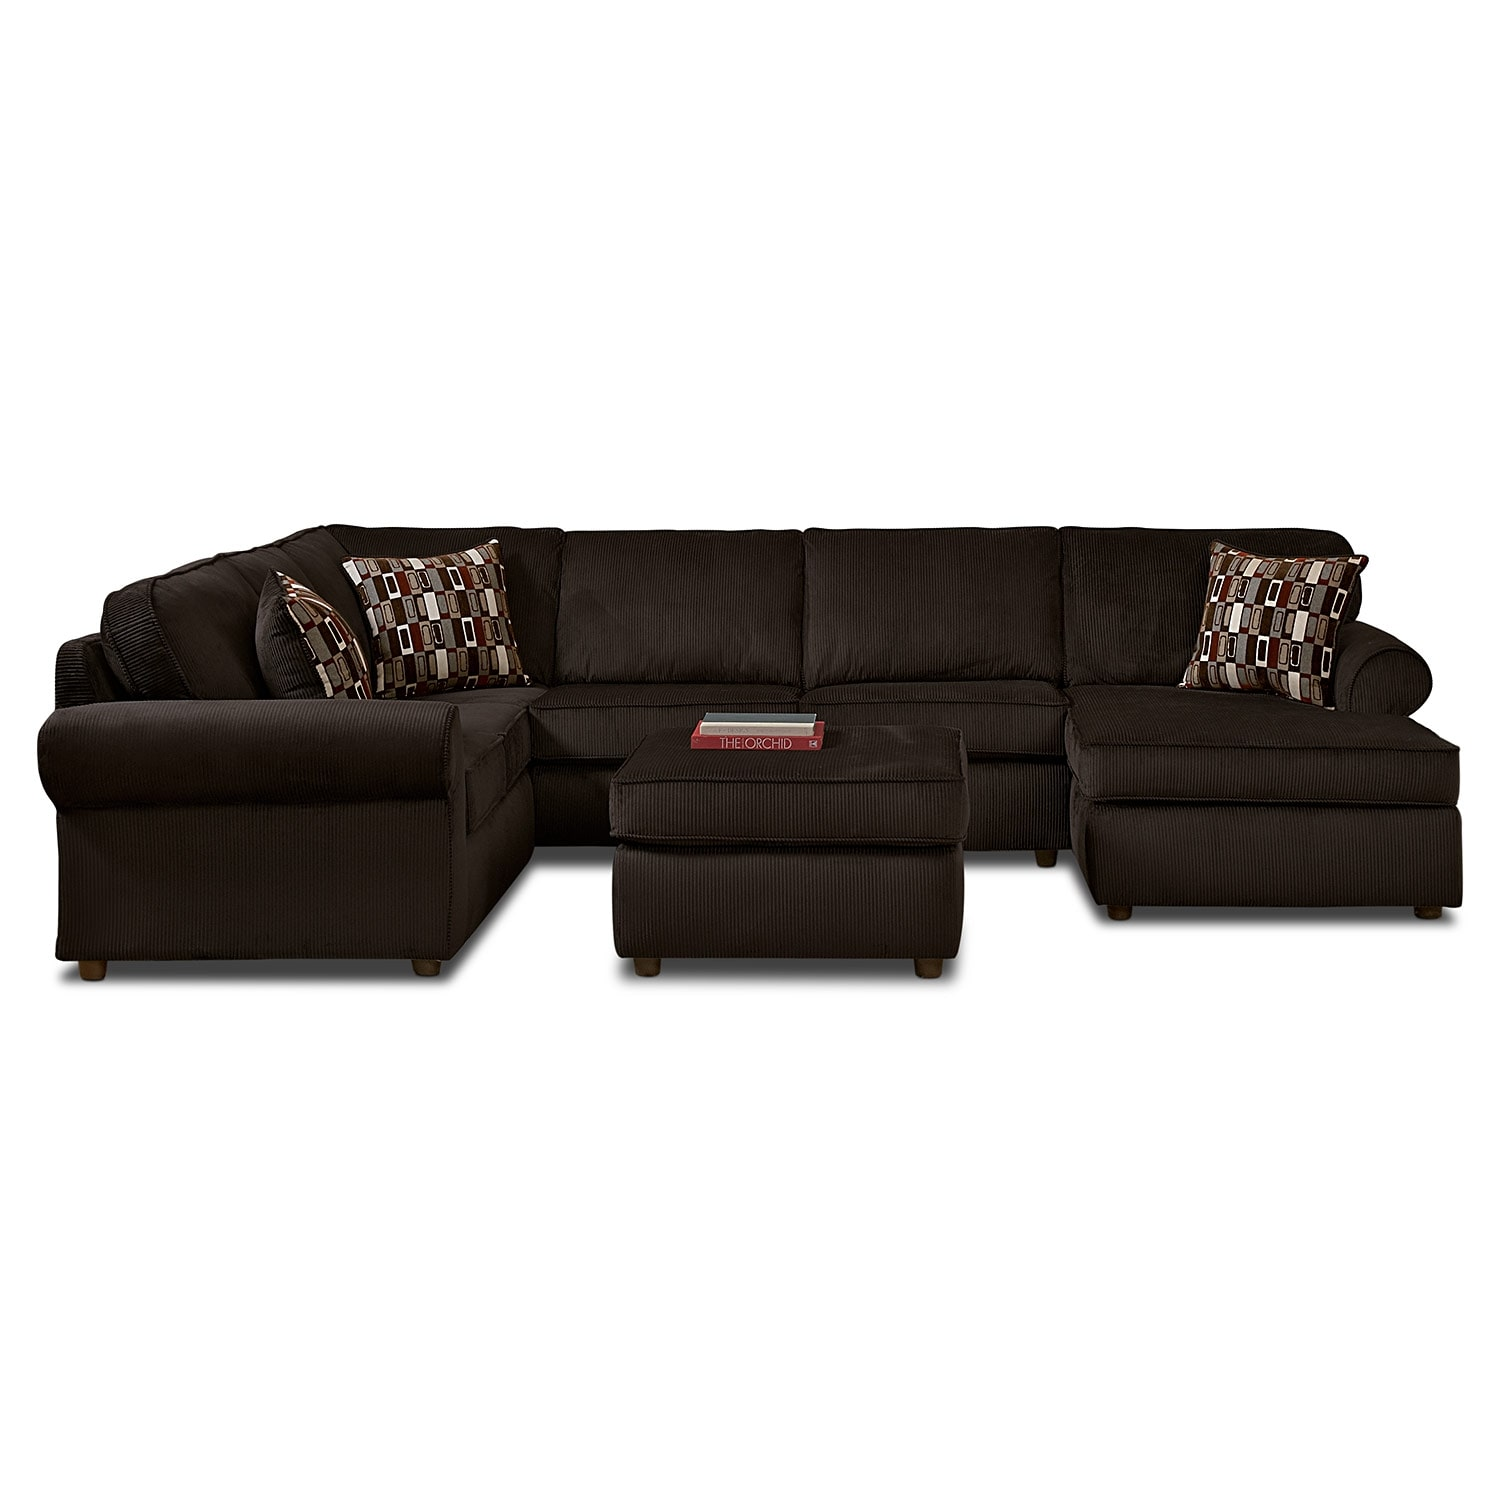 Monarch 3 Pc. Sectional and Cocktail Ottoman